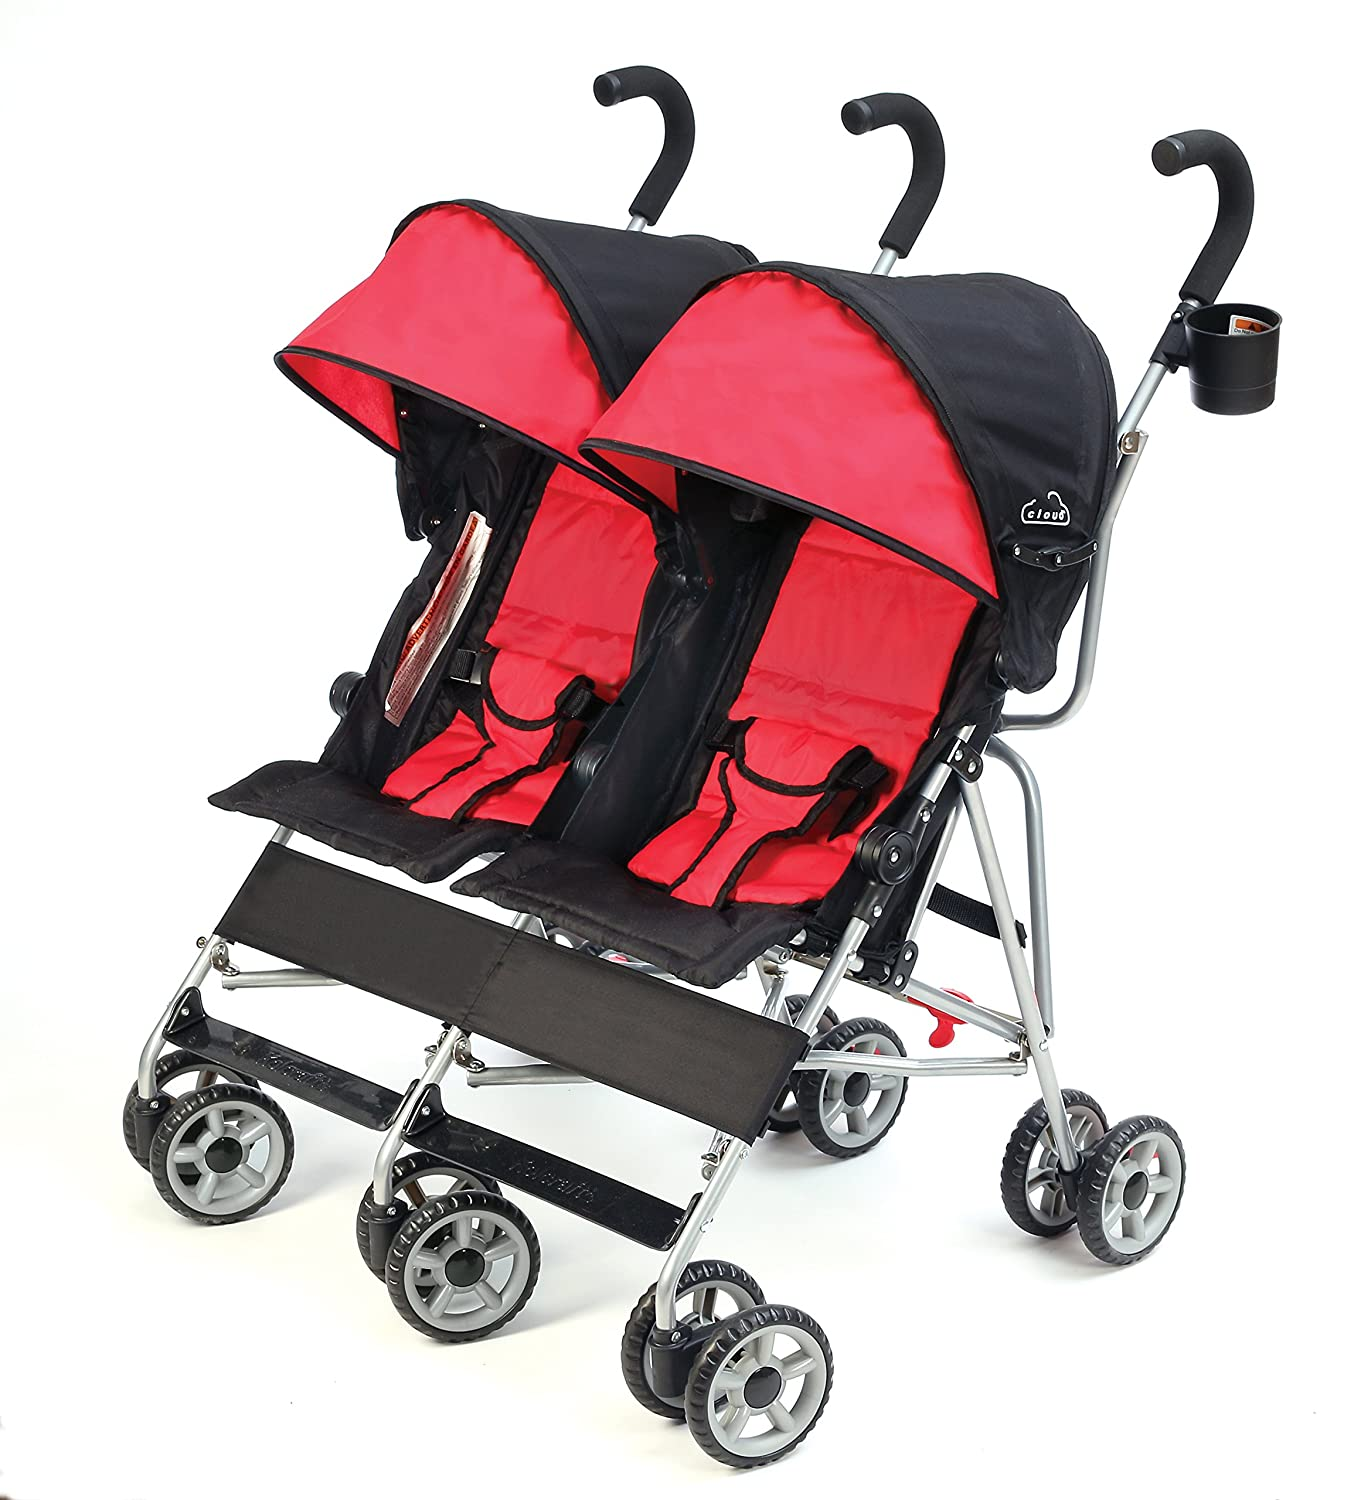 Kolcraft Cloud Lightweight and Compact Double Umbrella Stroller, Red Black